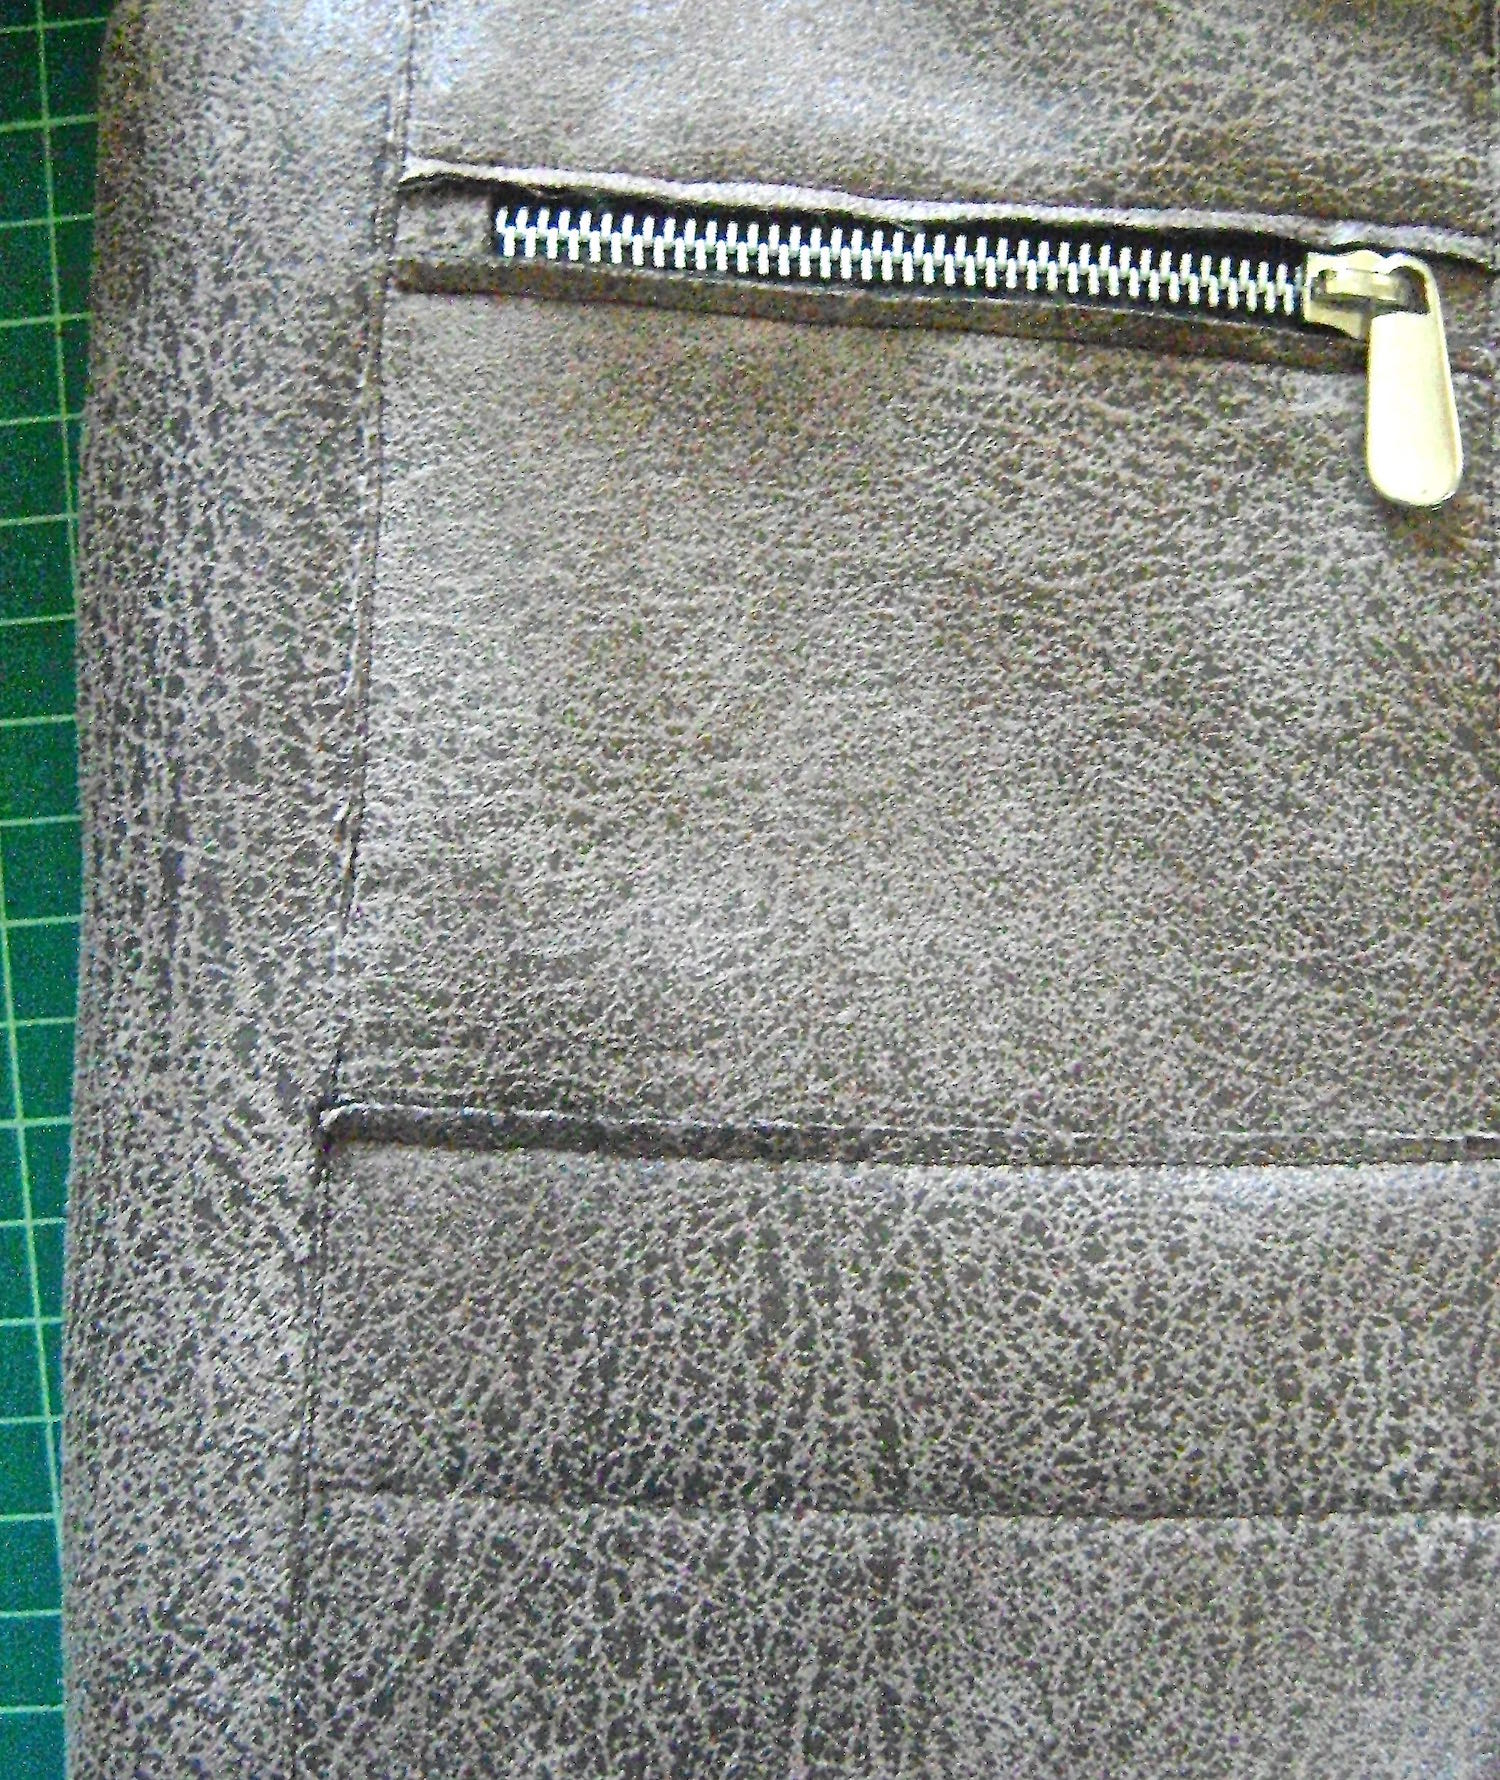 """step 17 - Topstitch a continuous vertical line from the top outside edges of the zippered pockets to the bottom of the lower pockets 1/8"""" from the raw edges."""